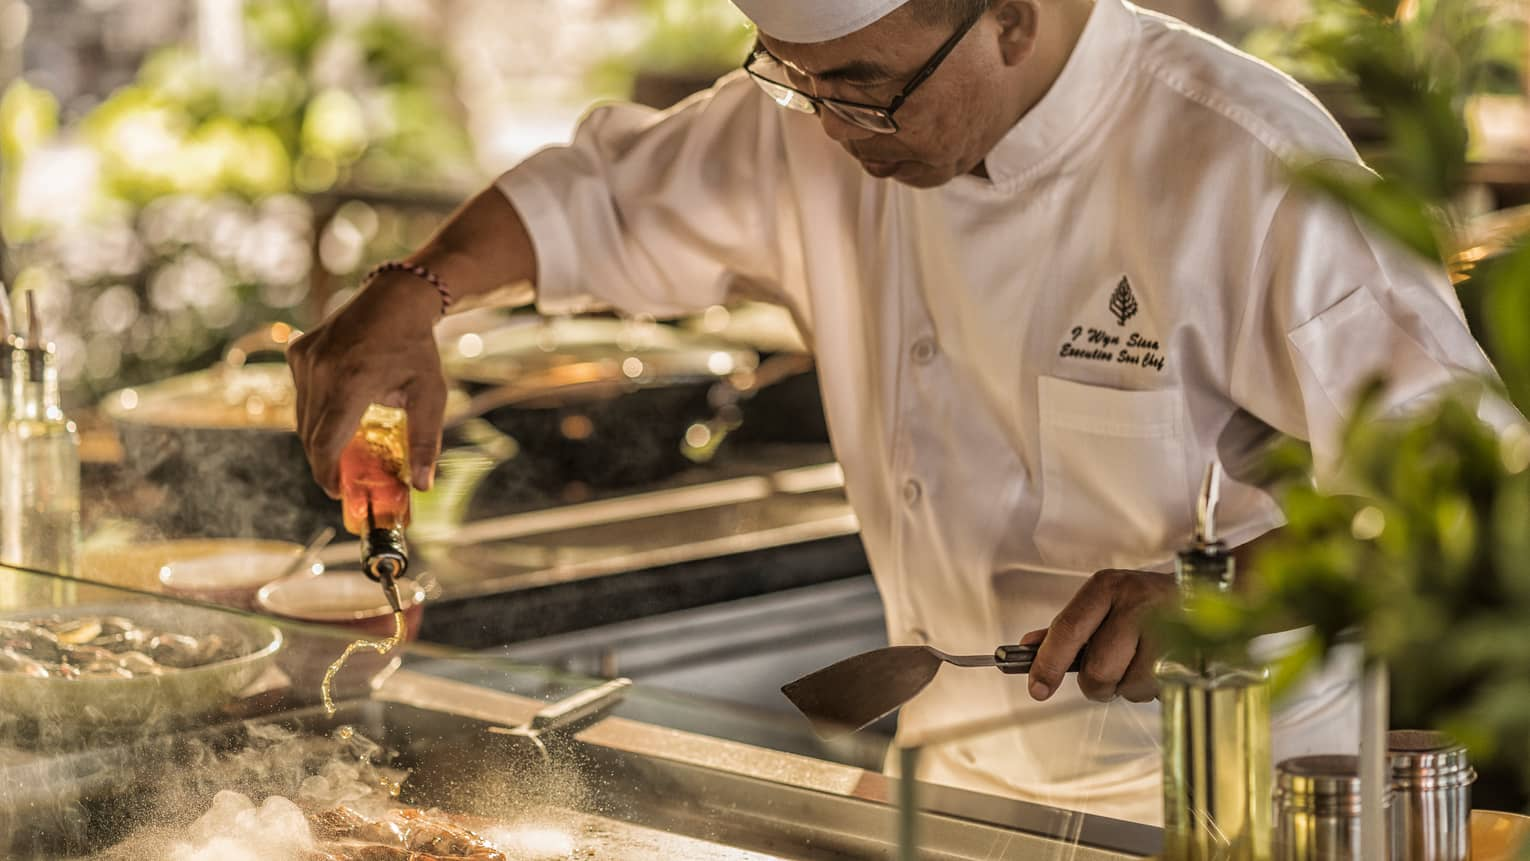 A chef cooks at the sizzling teppanyaki grill station